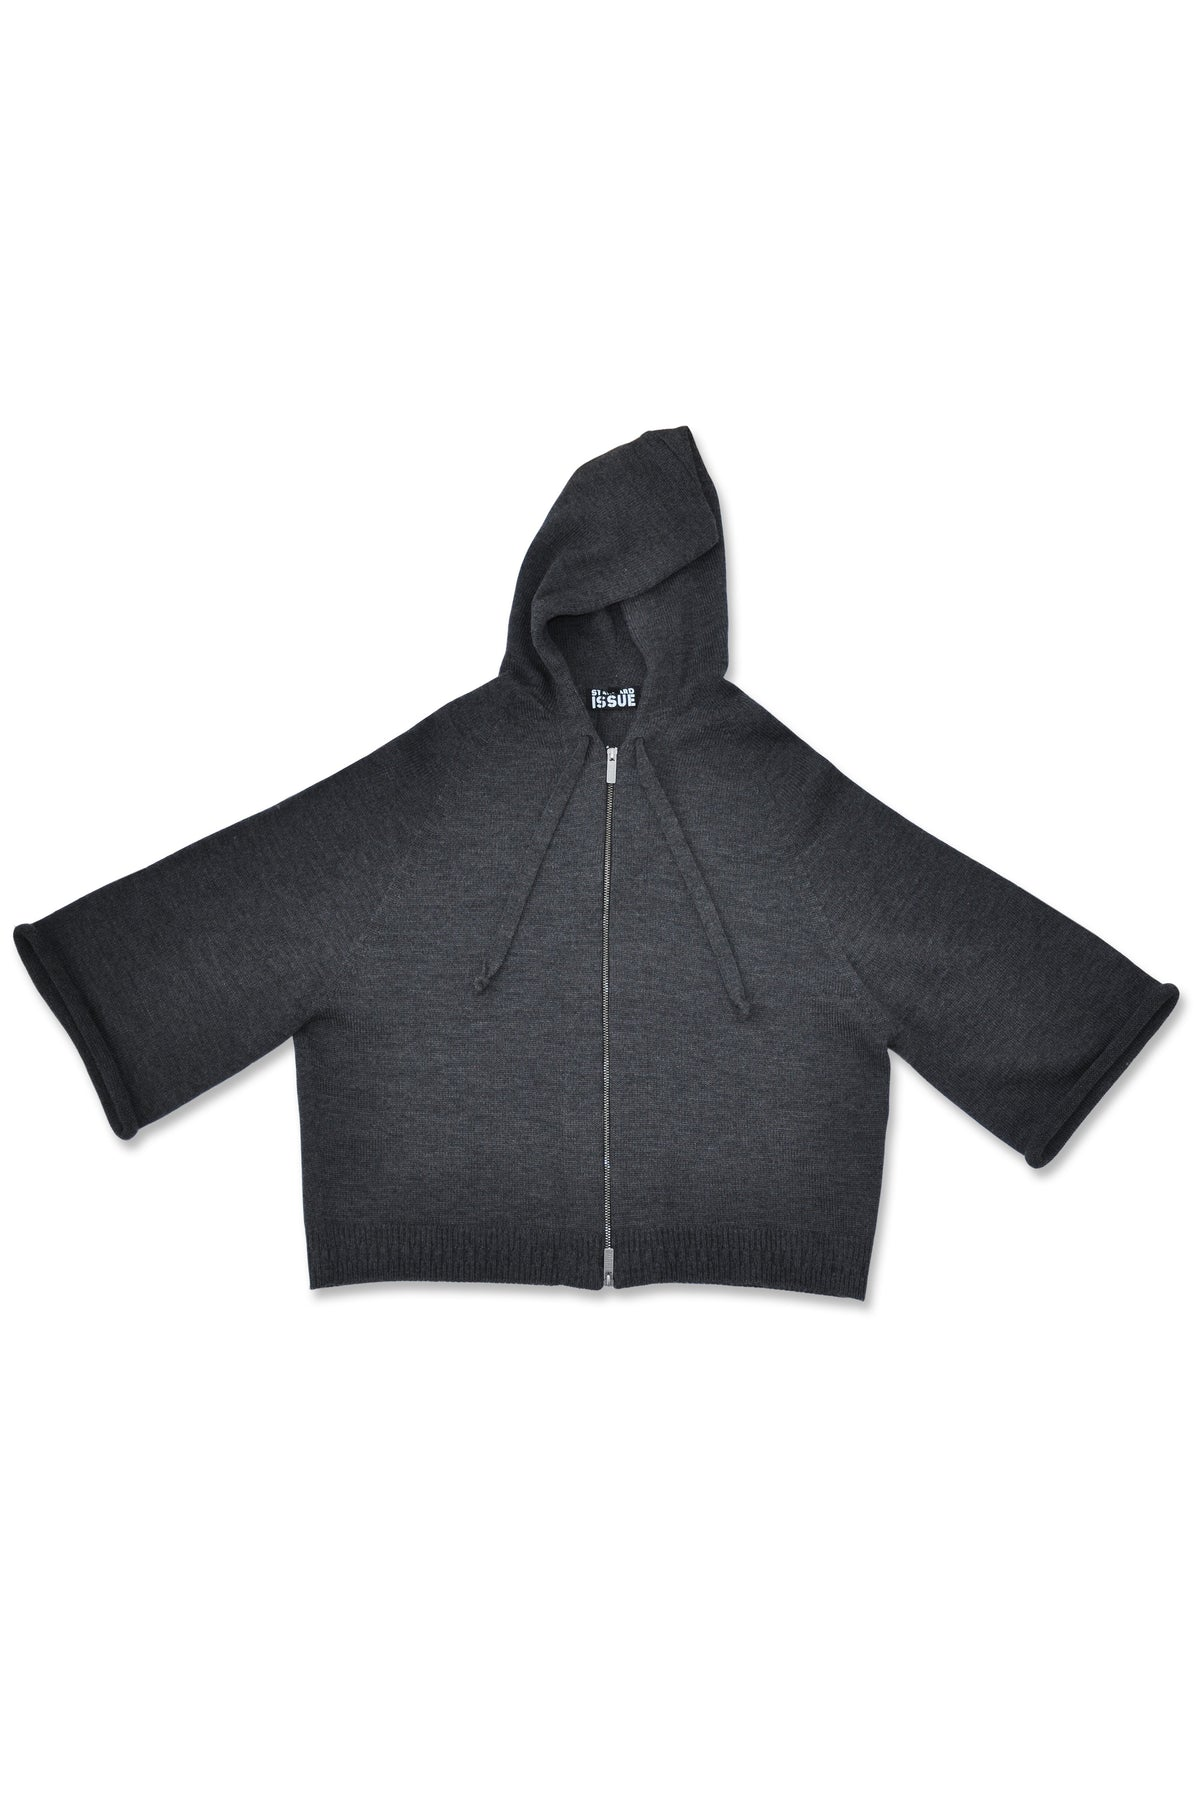 Standard Issue Zip Crop Jacket Knitwear Stockists Auckland Made in New Zealand NZ Designer Clothing